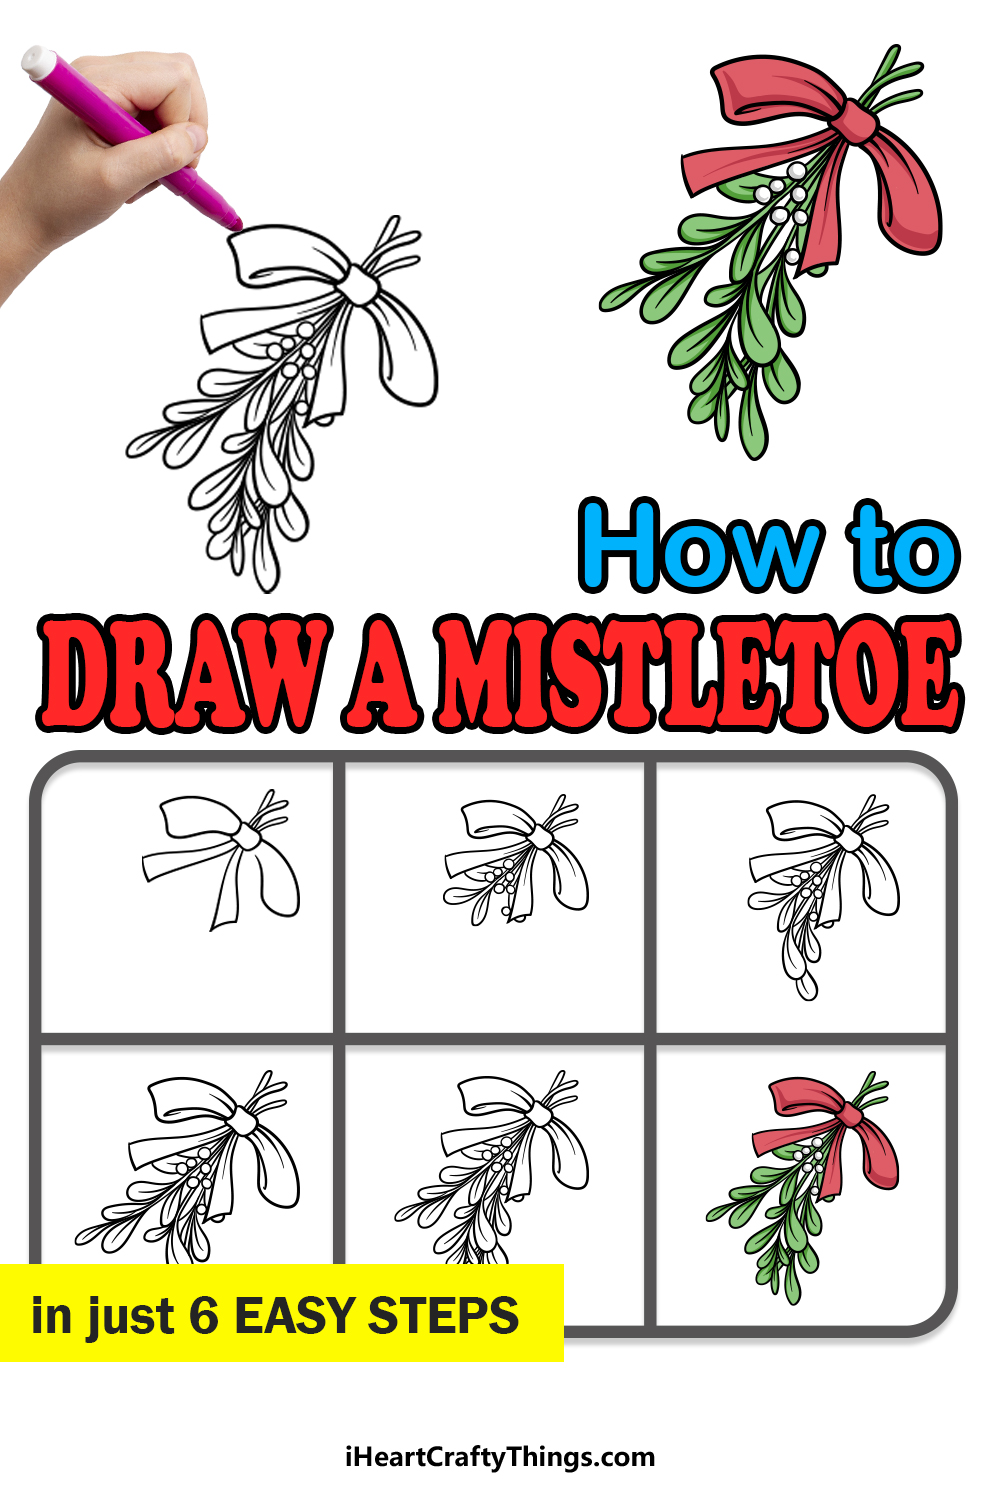 how to draw a mistletoe in 6 easy steps